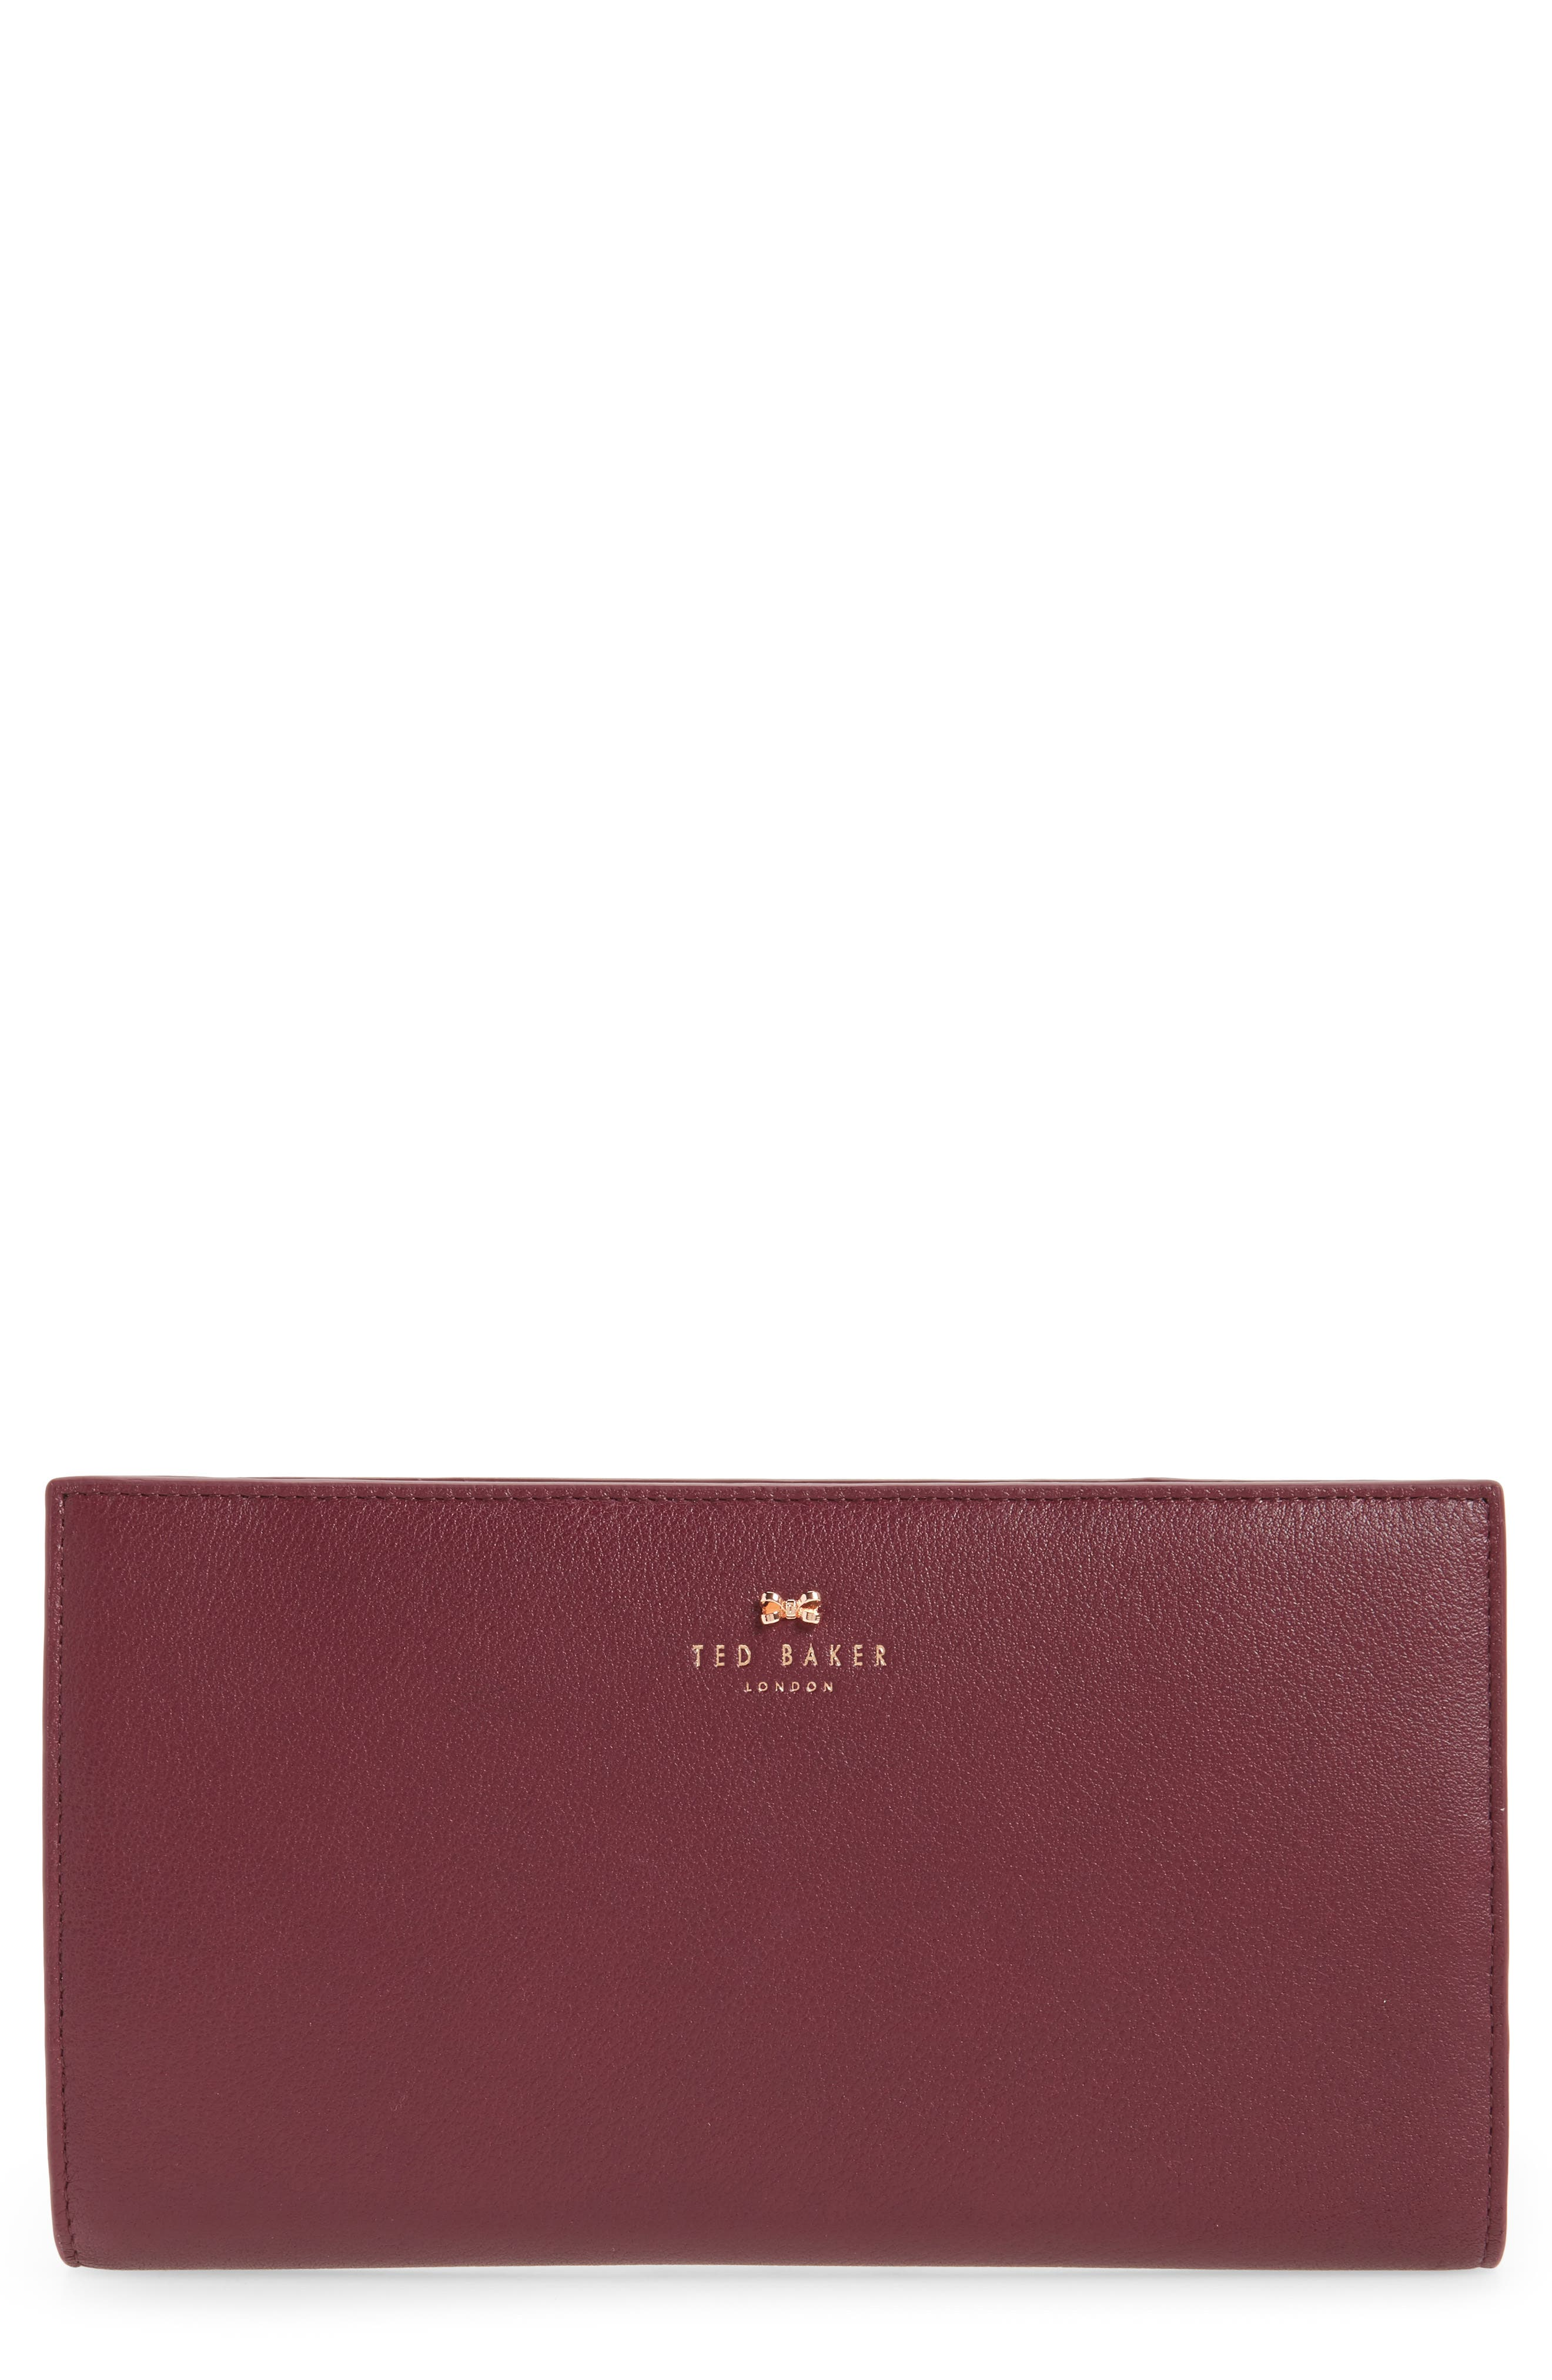 Main Image - Ted Baker London Dolle Leather Travel Wallet